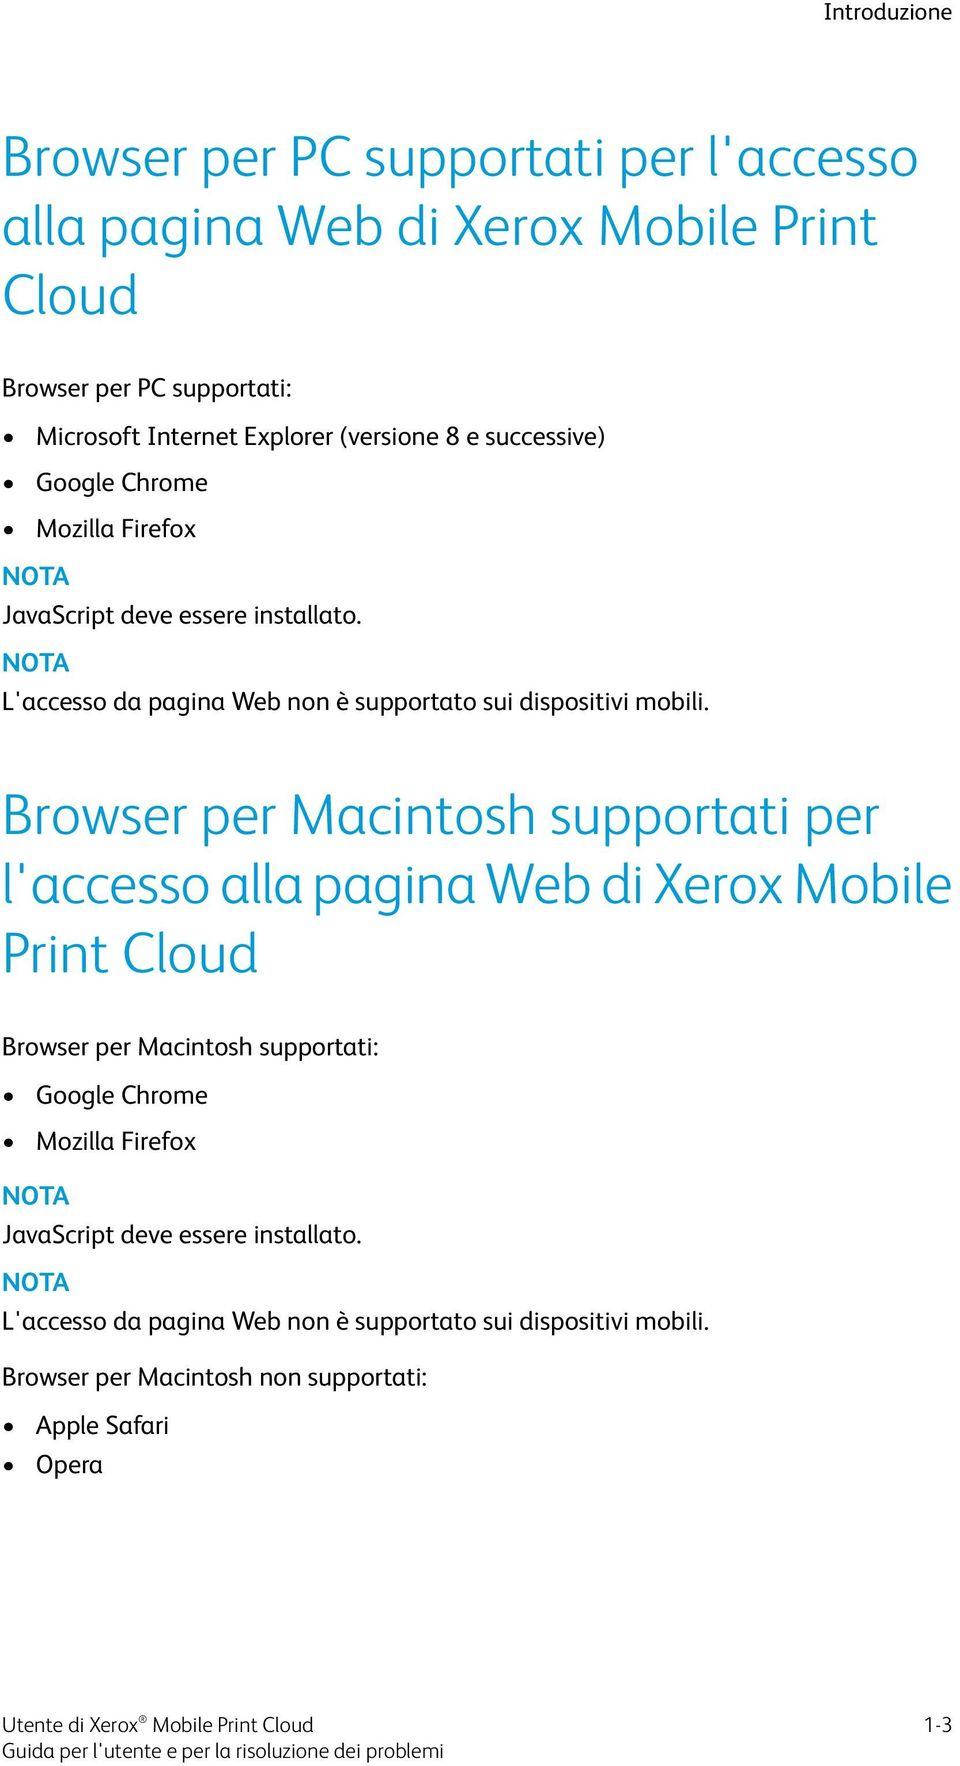 Browser per Macintosh supportati per l'accesso alla pagina Web di Xerox Mobile Print Cloud Browser per Macintosh supportati: Google Chrome Mozilla Firefox